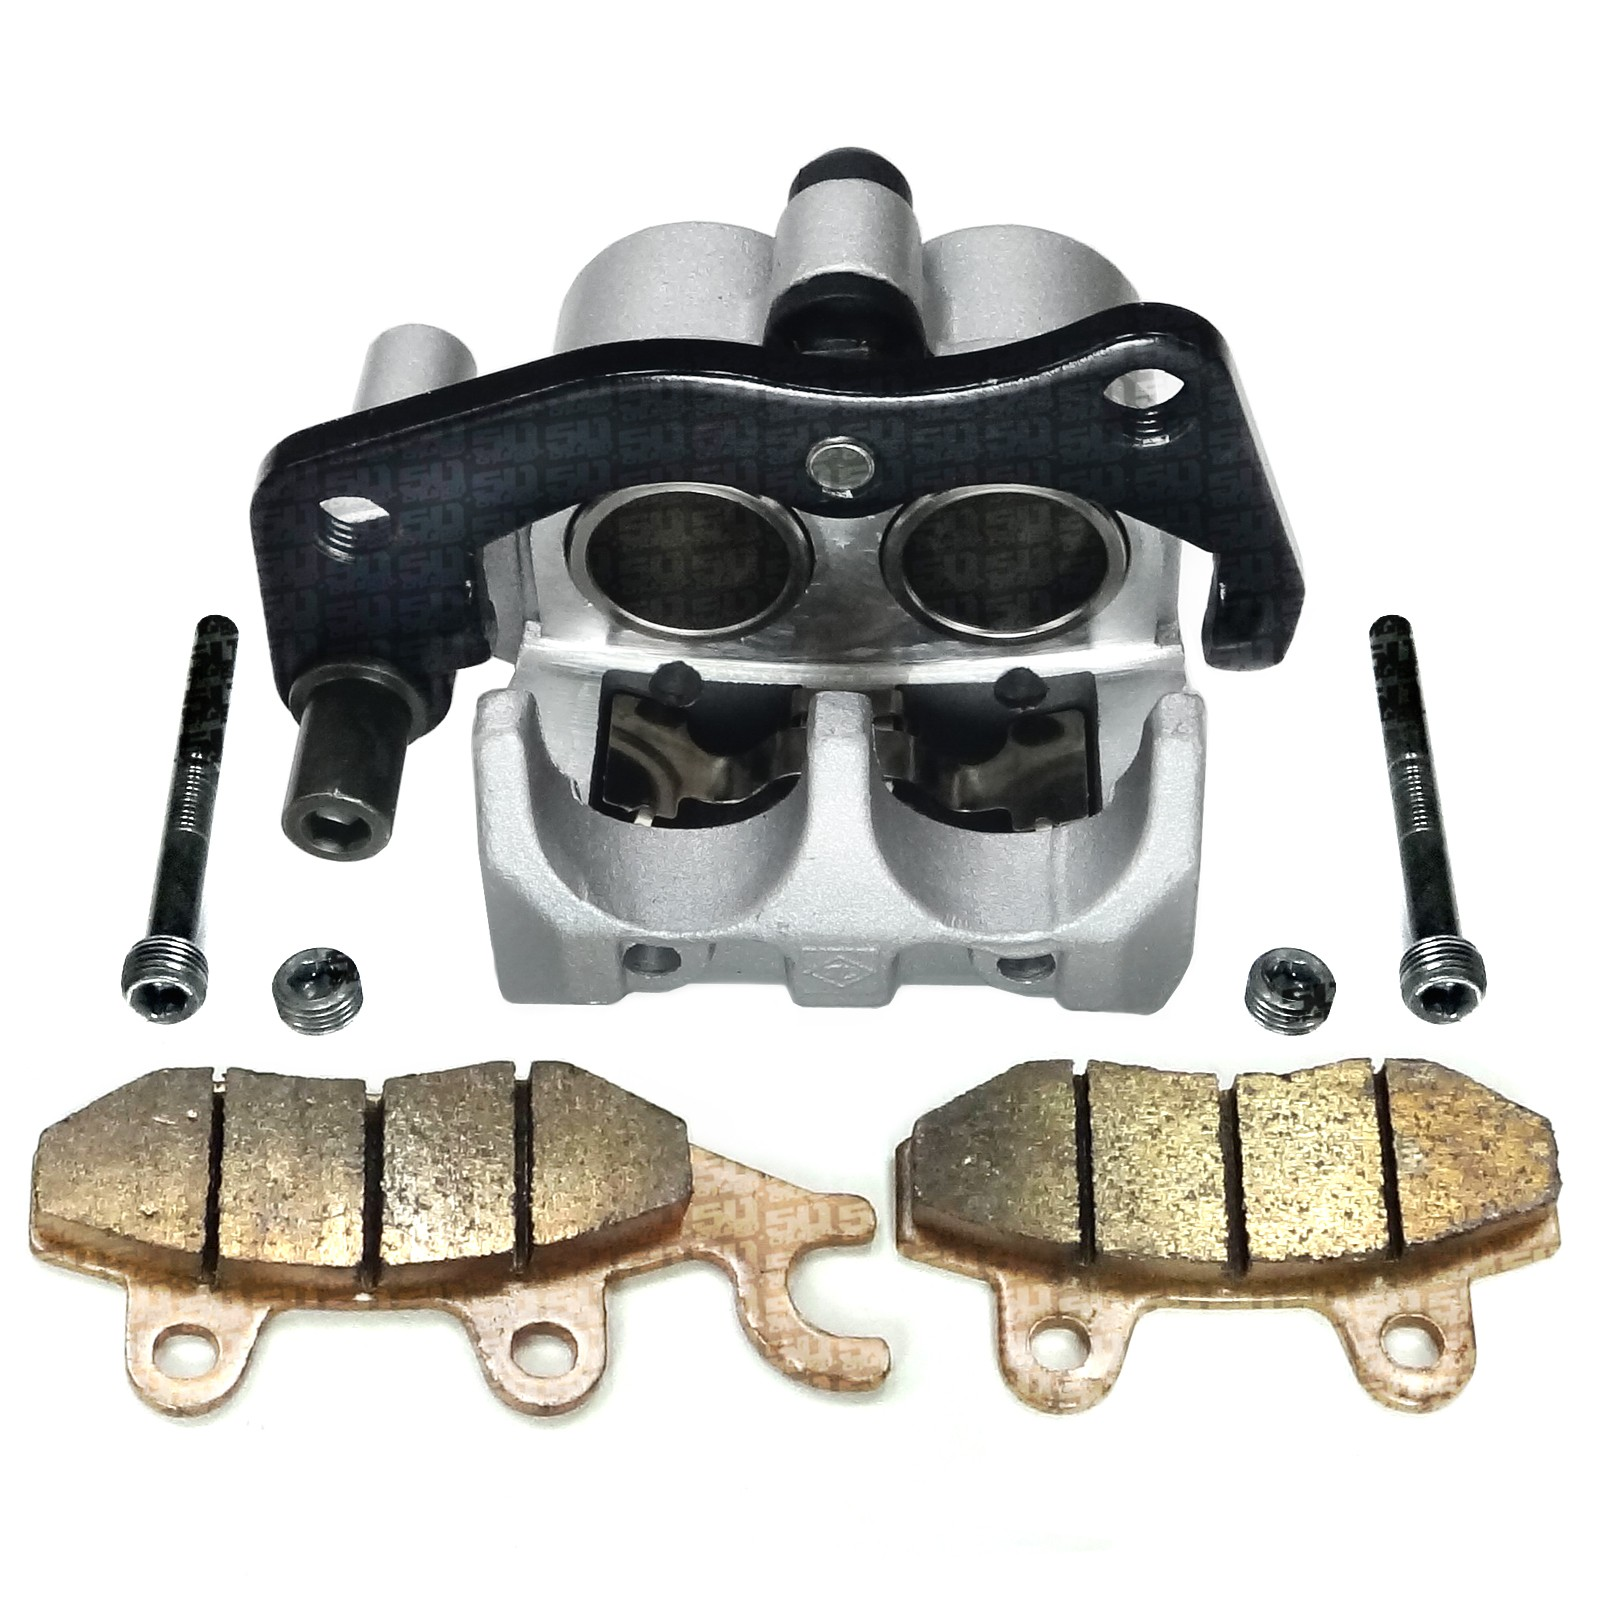 Yamaha Rhino YXR 450 660 Front Left or Right Brake Caliper with Pads